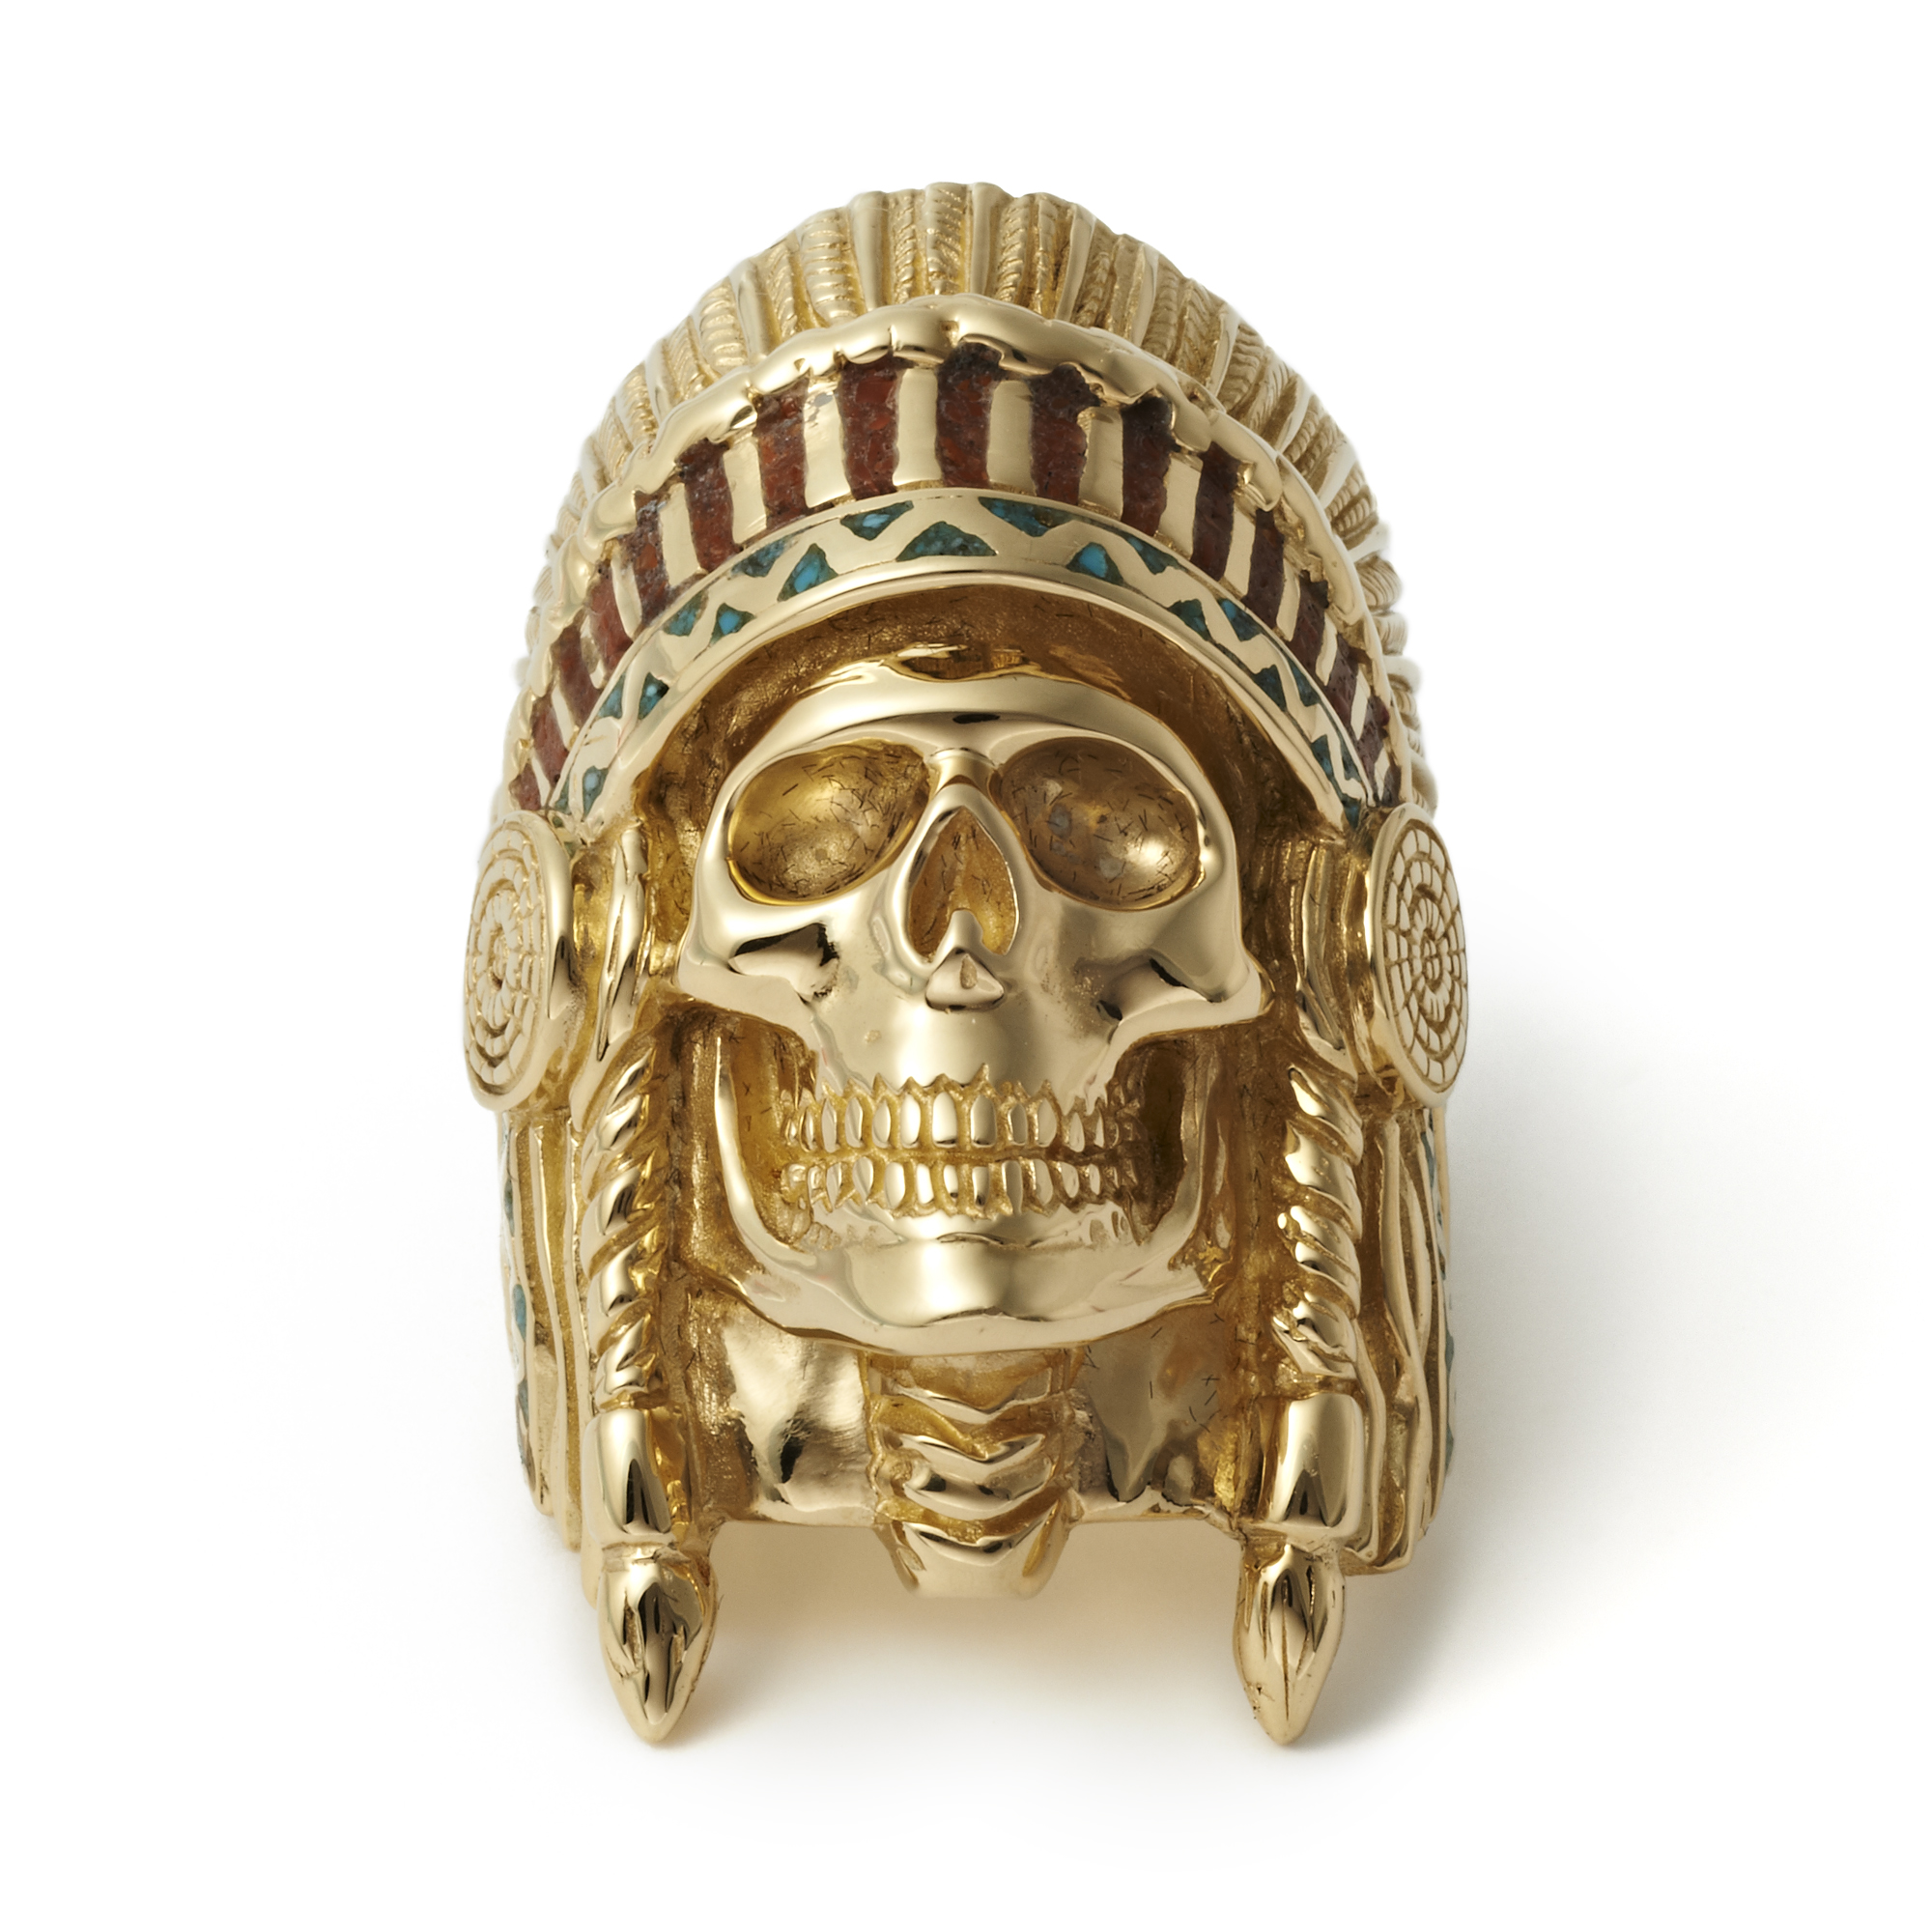 The Great Frog x Wes Lang 9-carat gold Skeleton Chief Ring